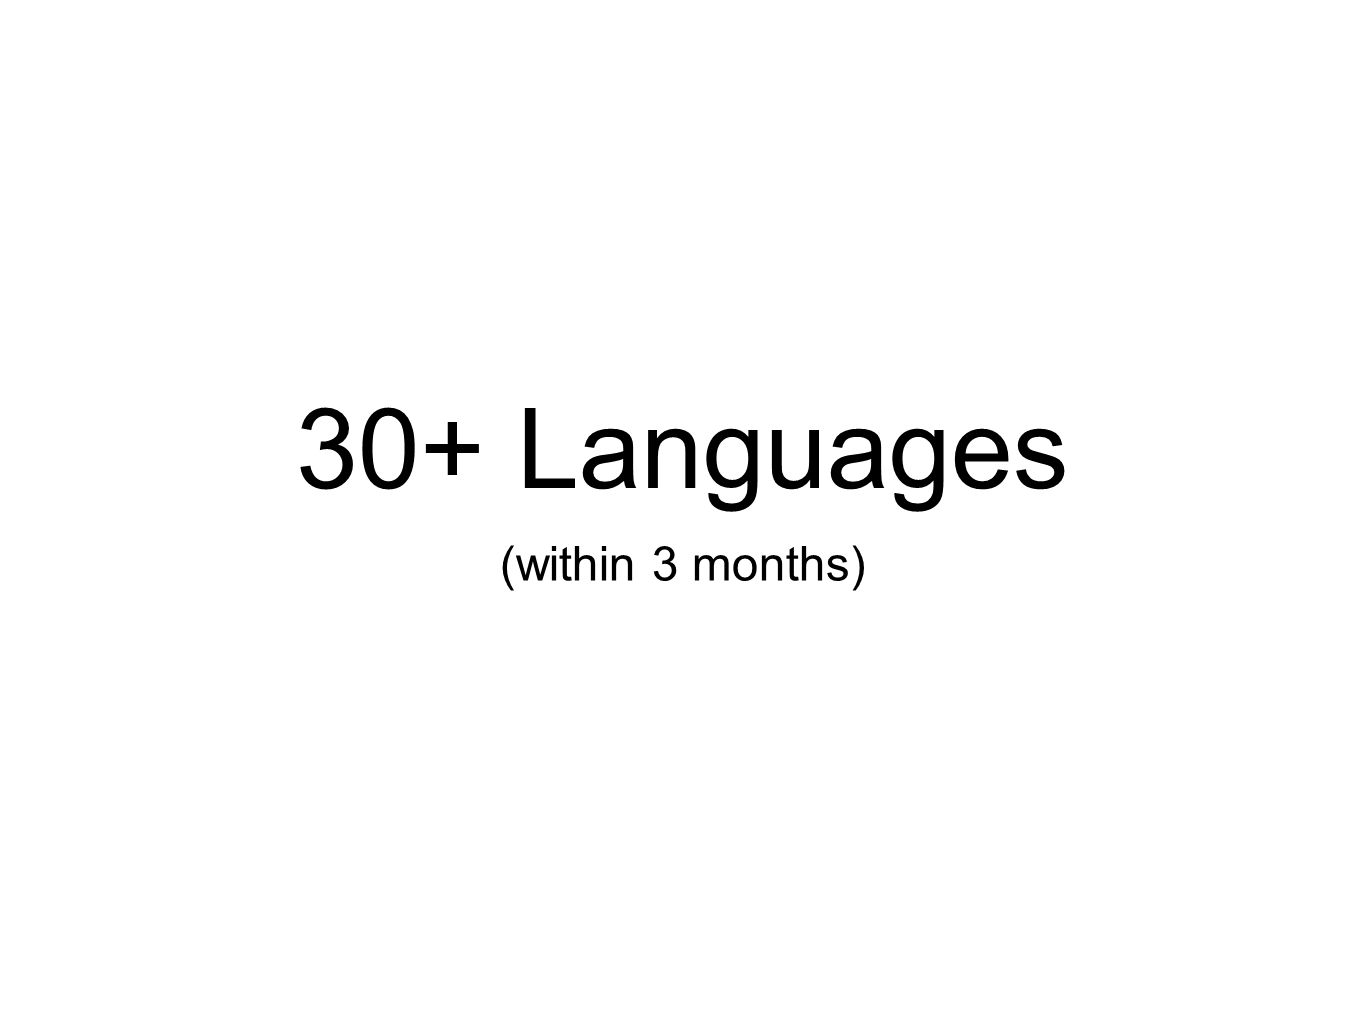 30+ Languages (within 3 months)